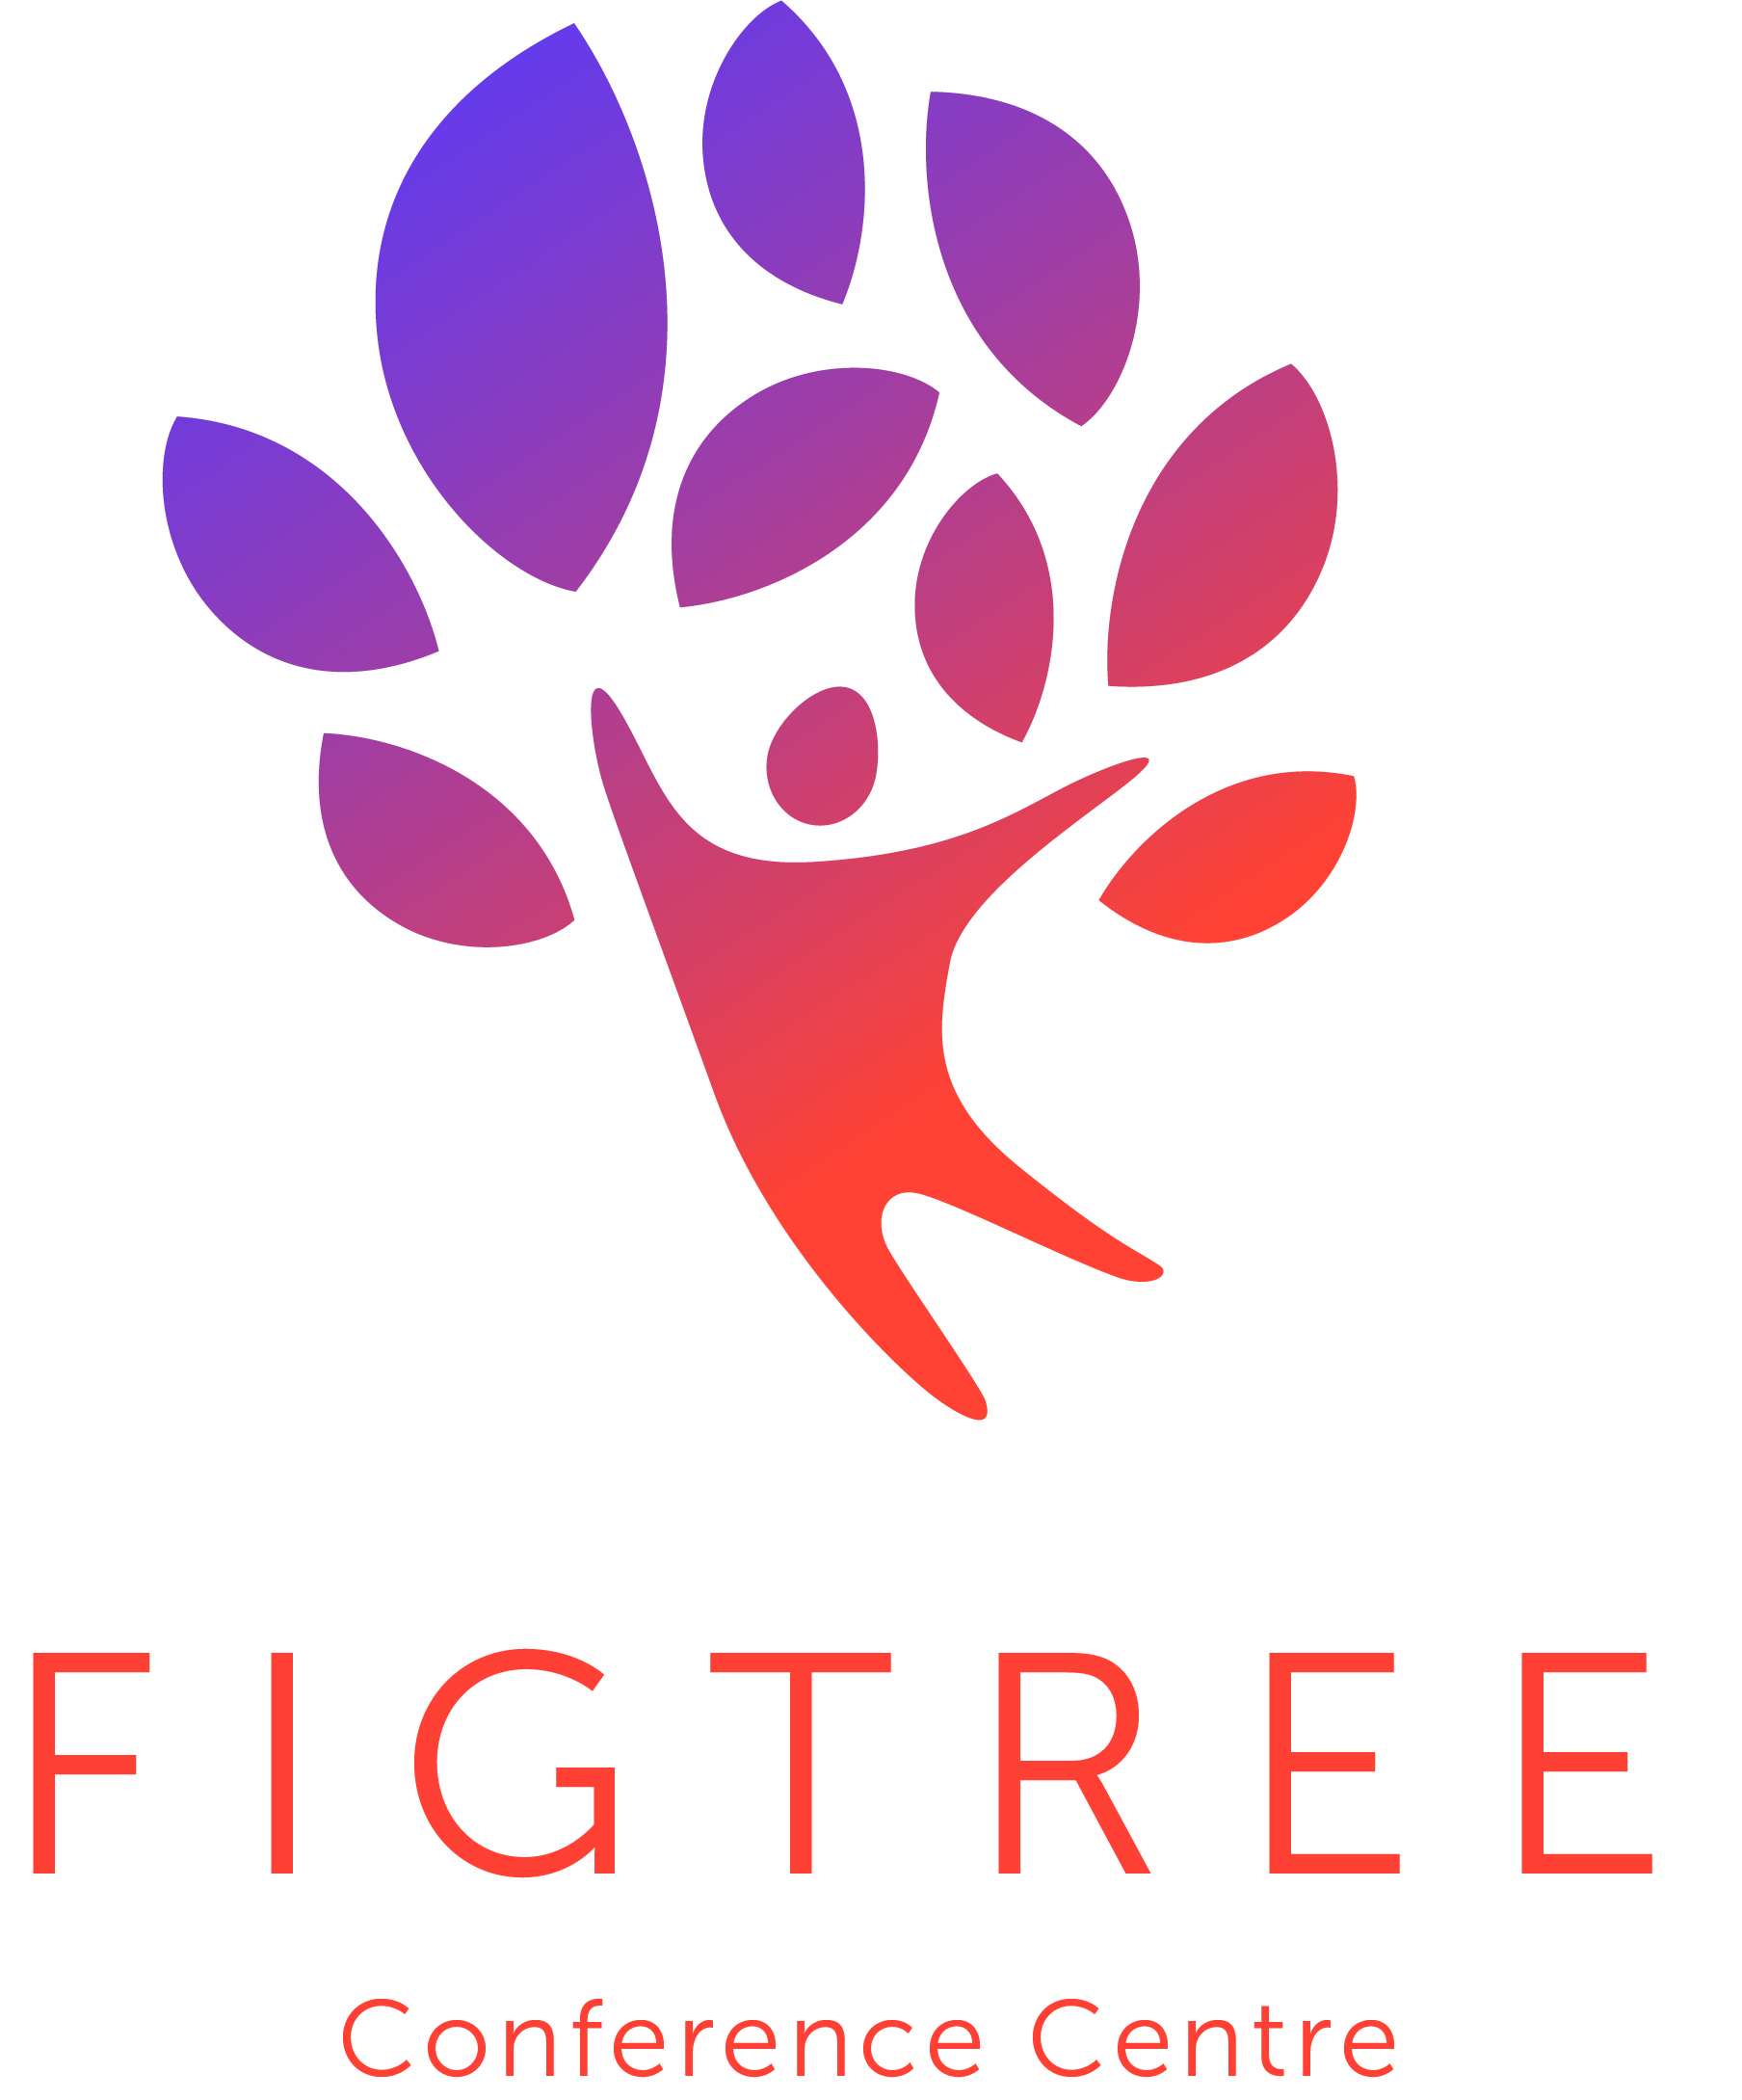 FigTree Conference Centre_Logo_CMYK.jpeg